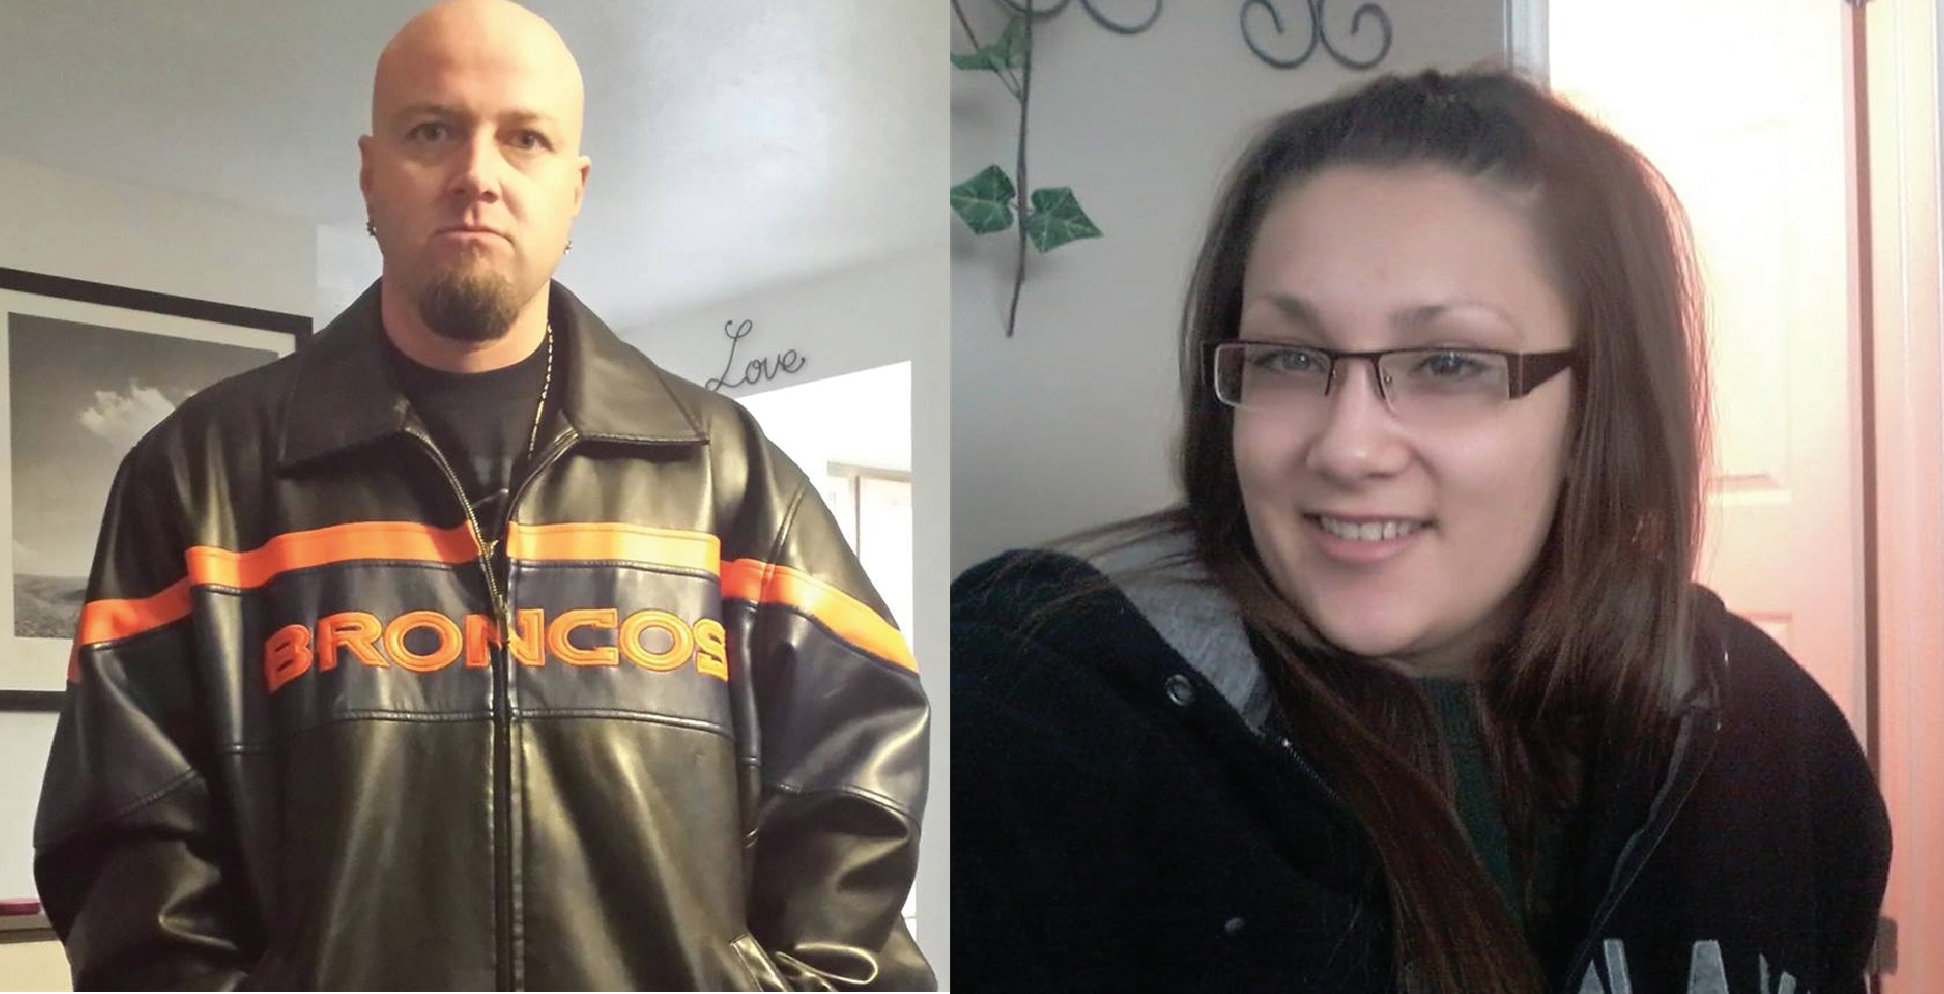 Suspects Christopher John Montoya & Monica Martinez